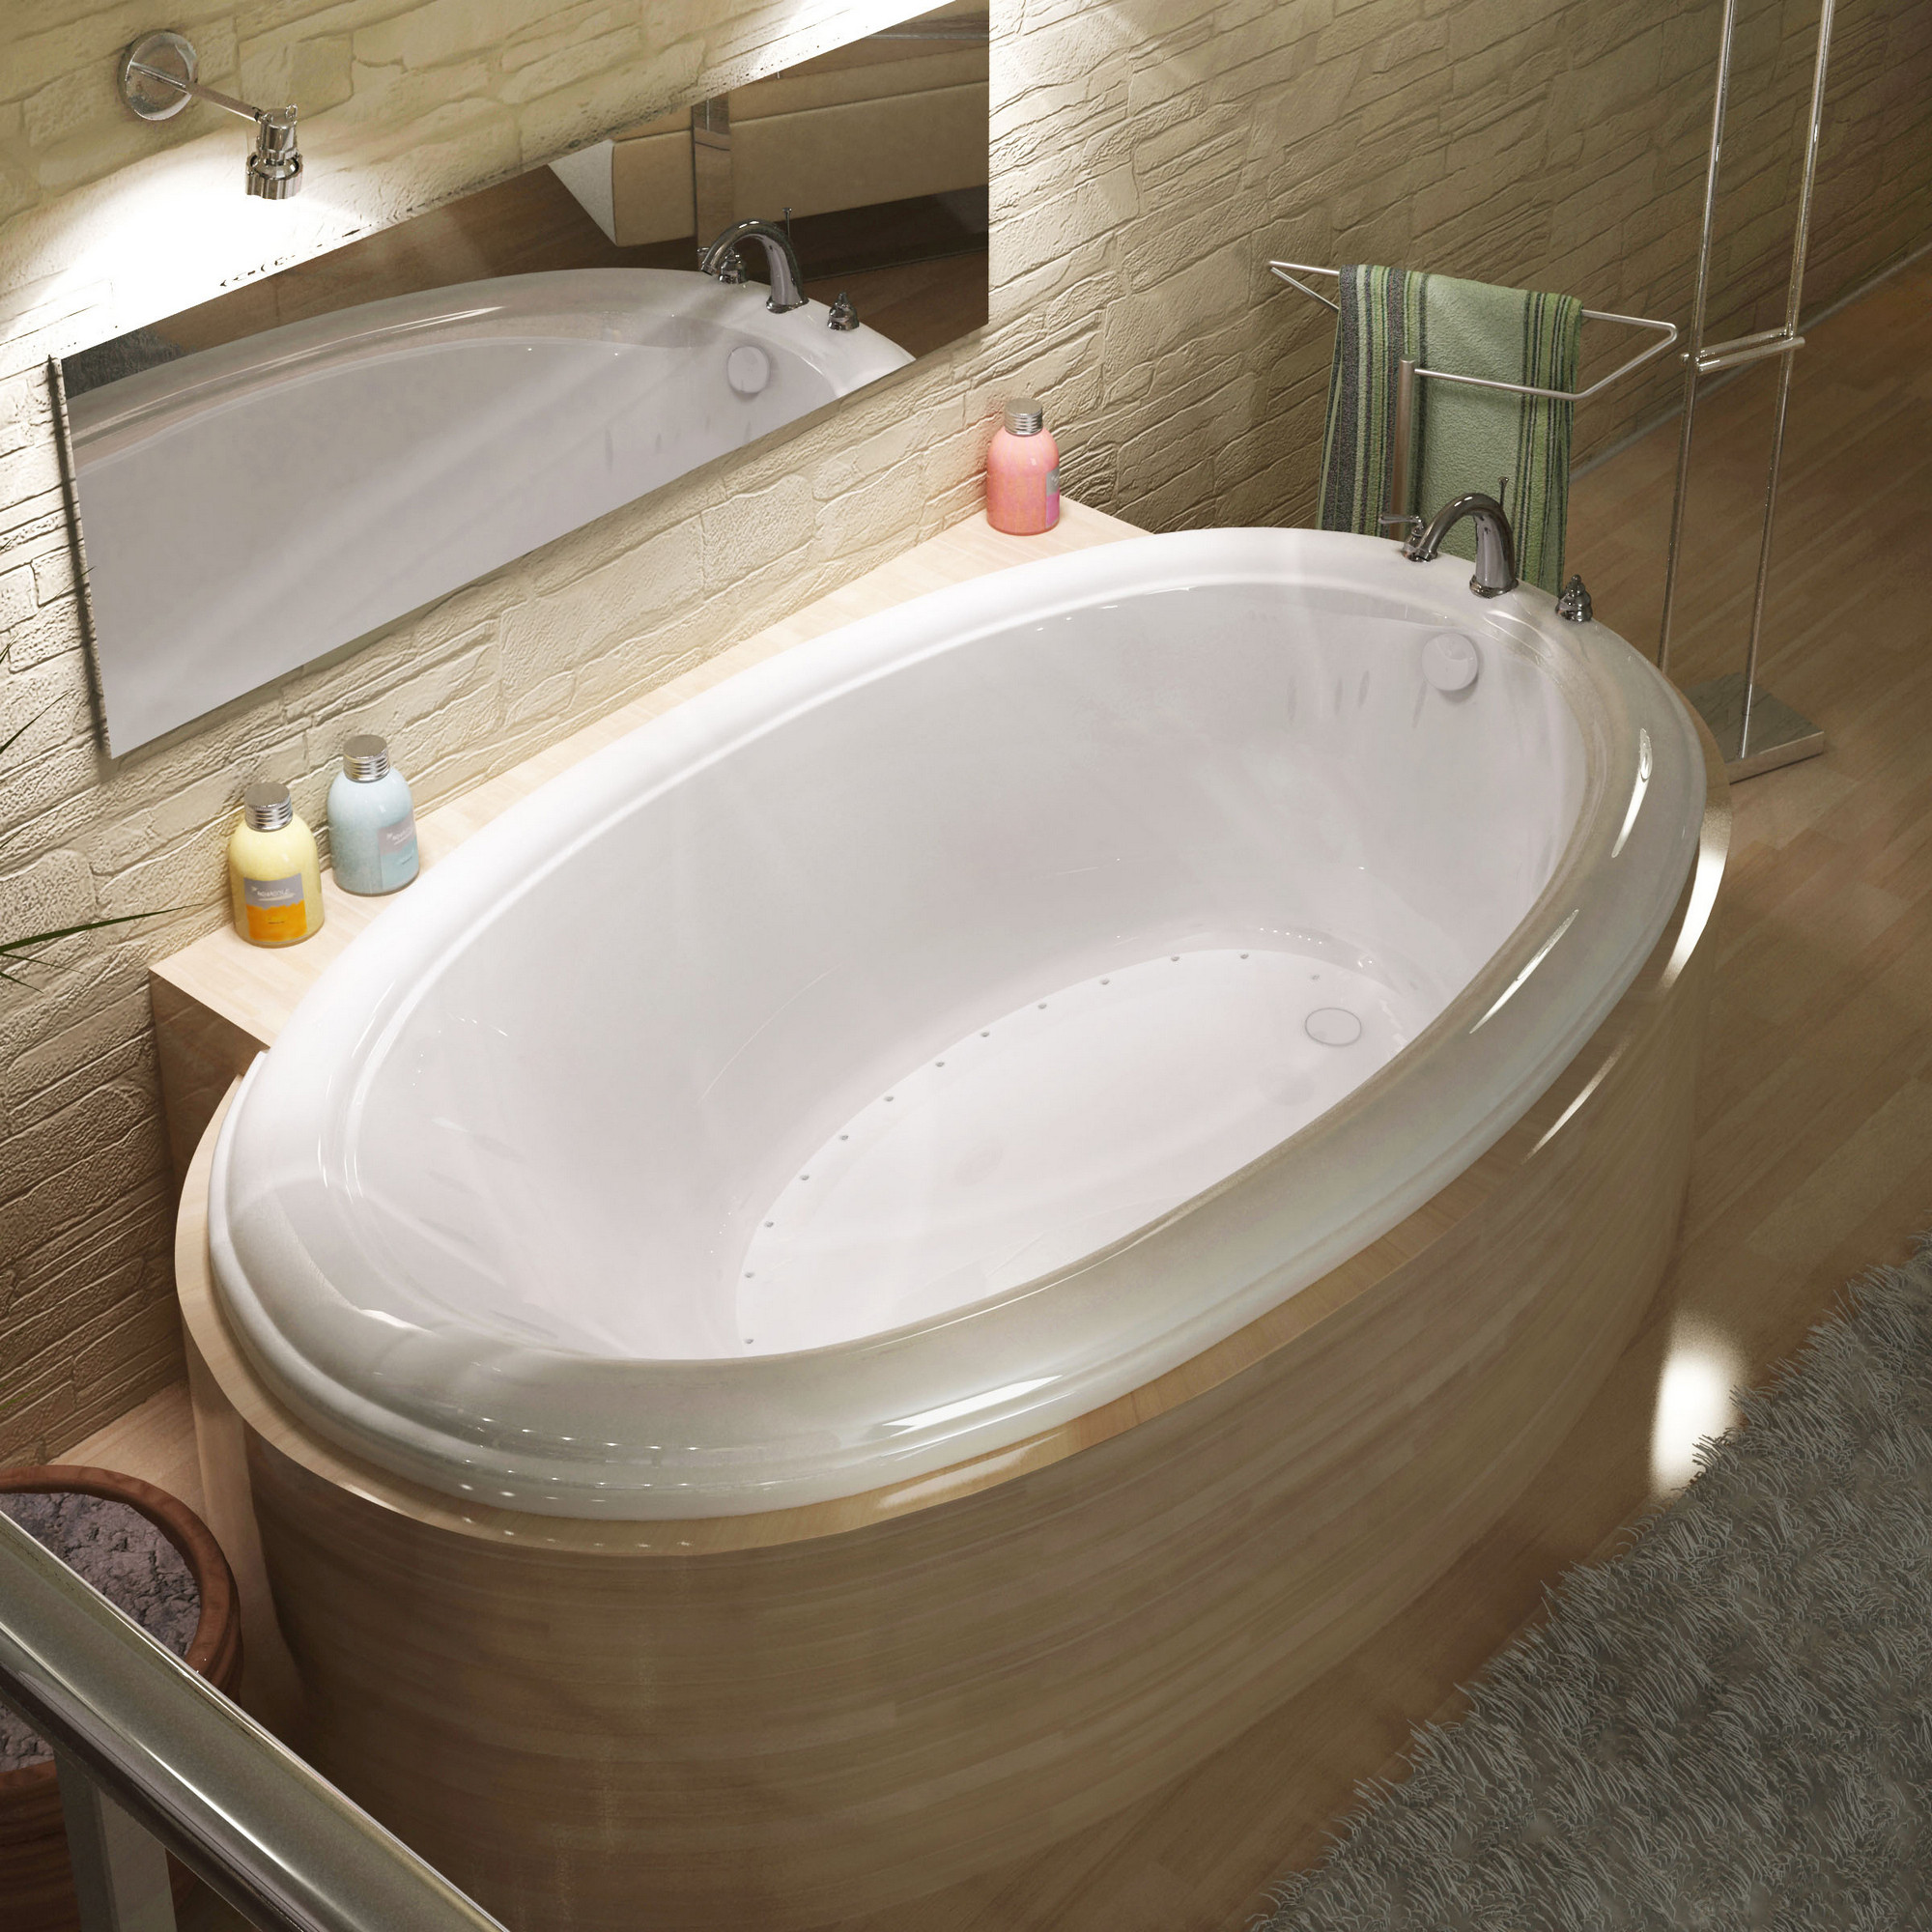 MediTub 4478PCAL Atlantis Petite Oval Air Jetted Bathtub With Left Blower